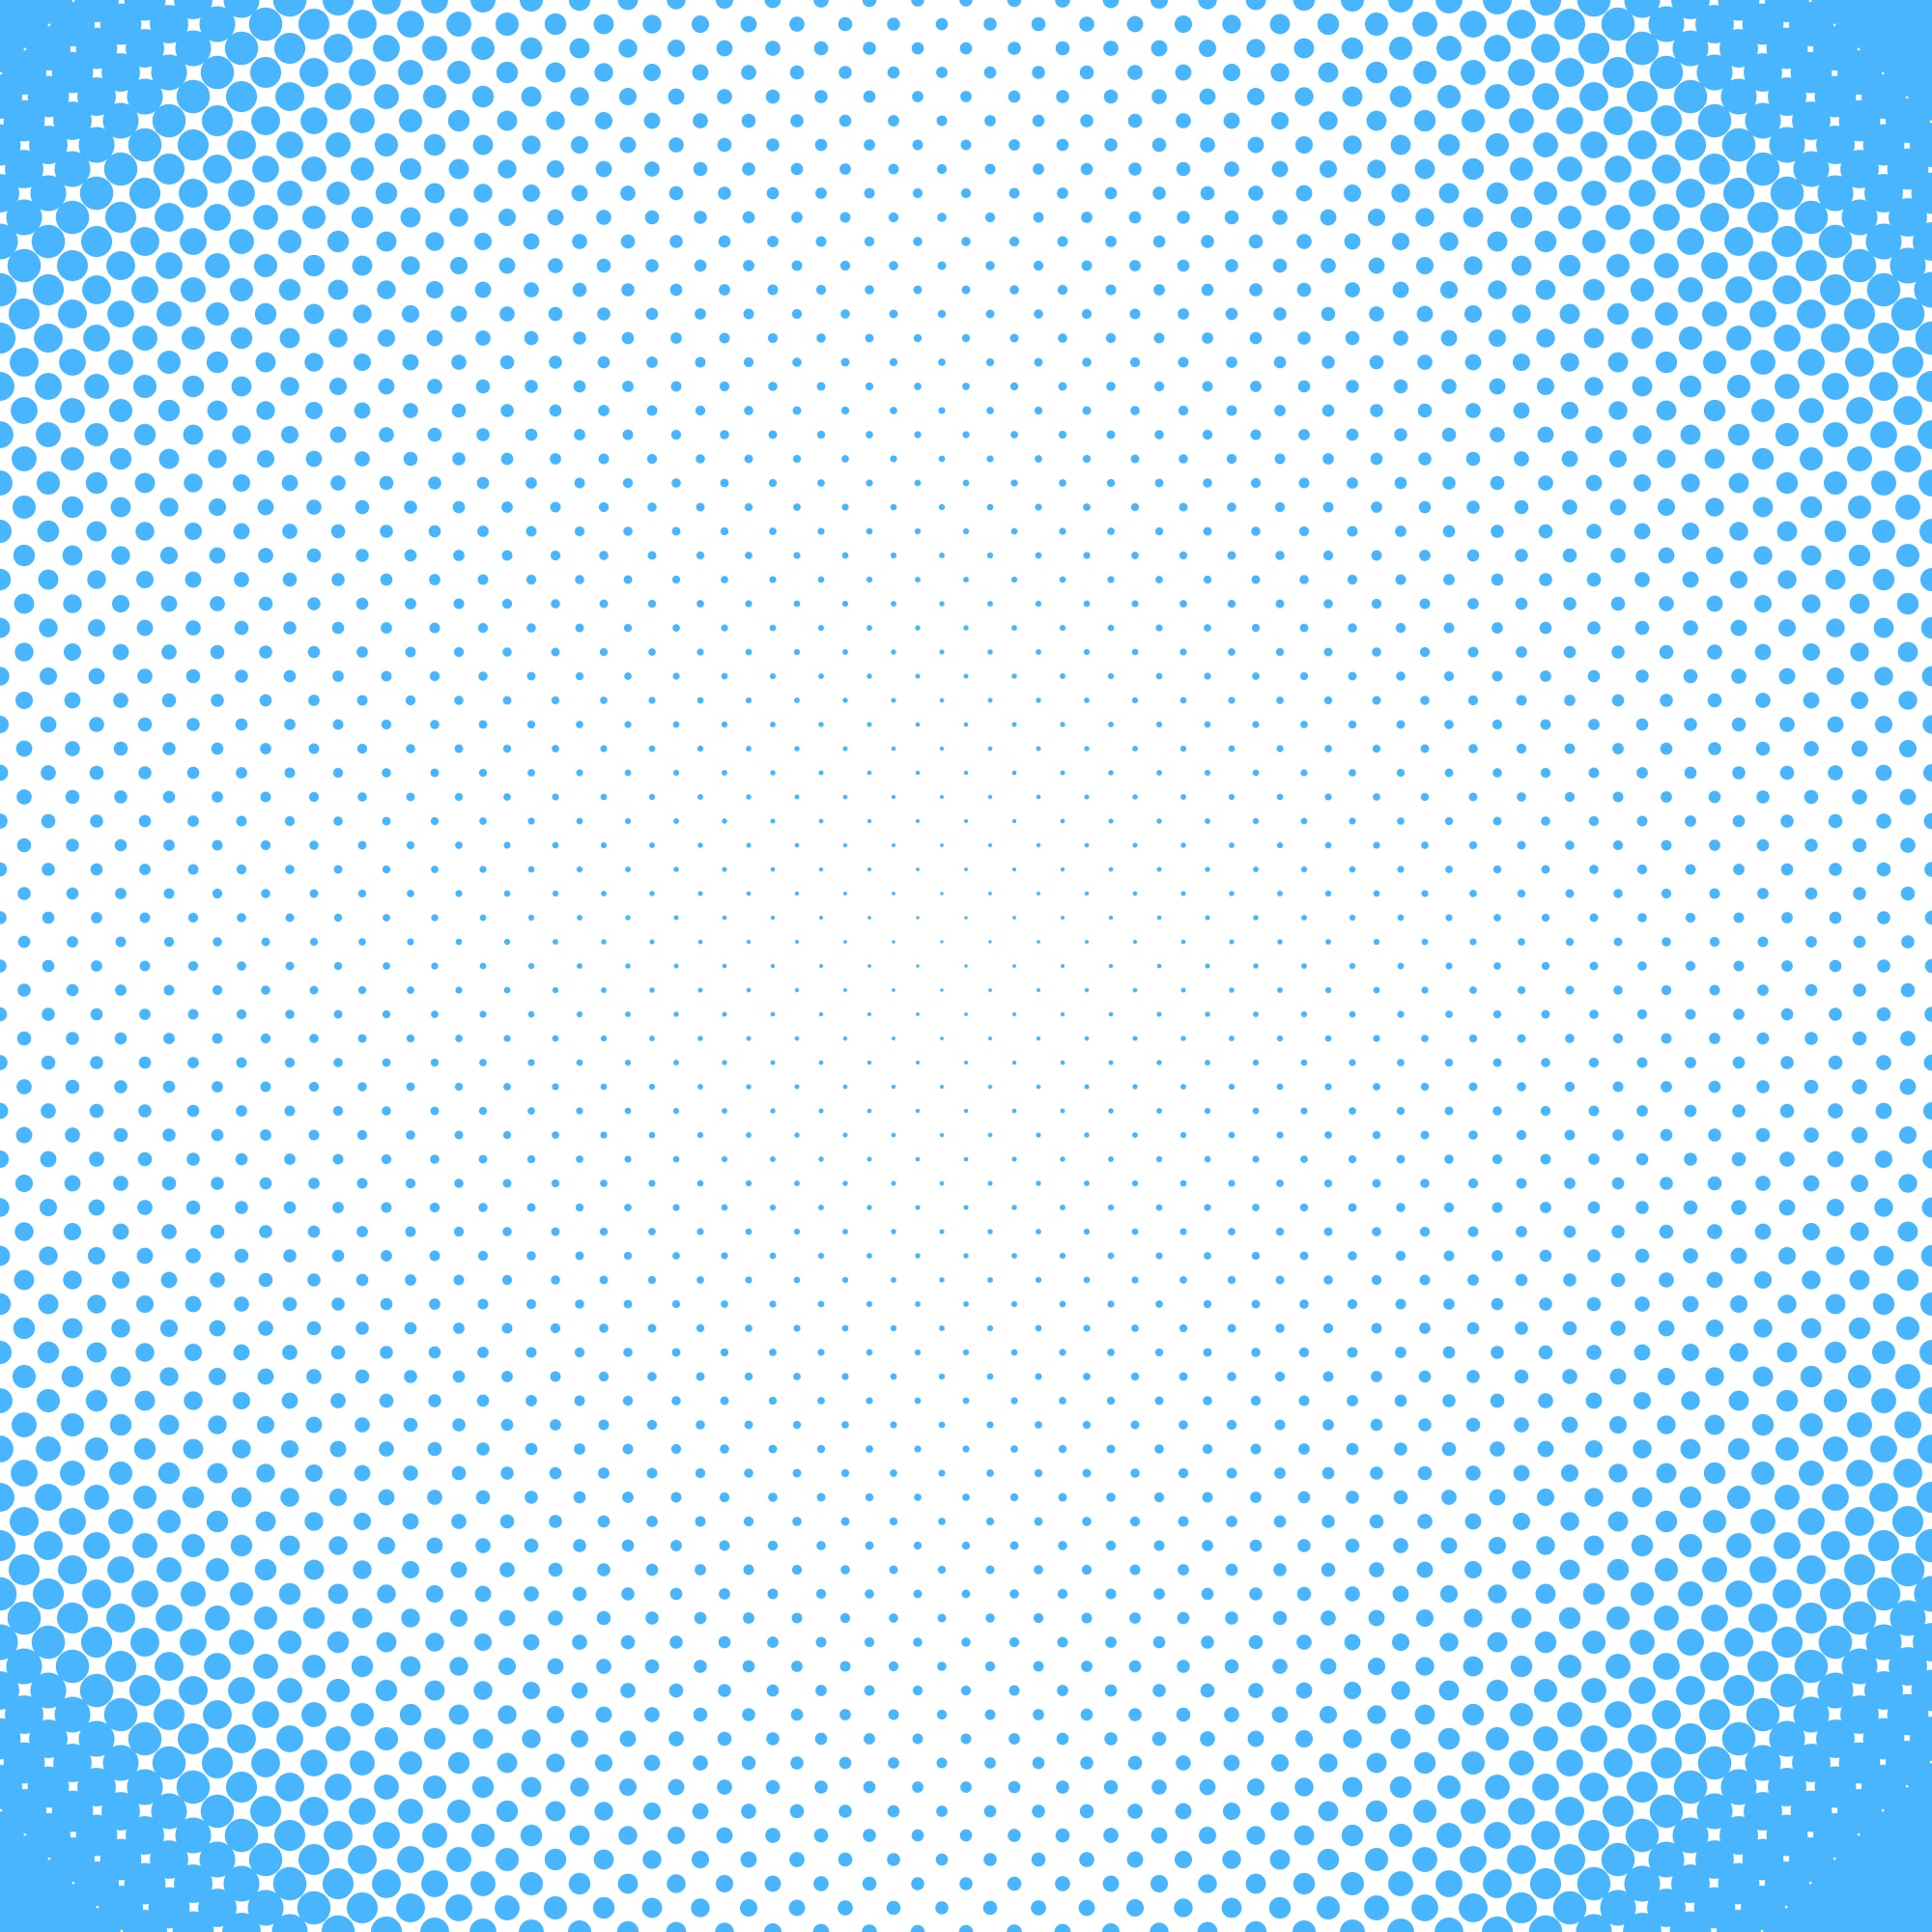 Abstract halftone dot pattern background - vector design from circles in varying sizes